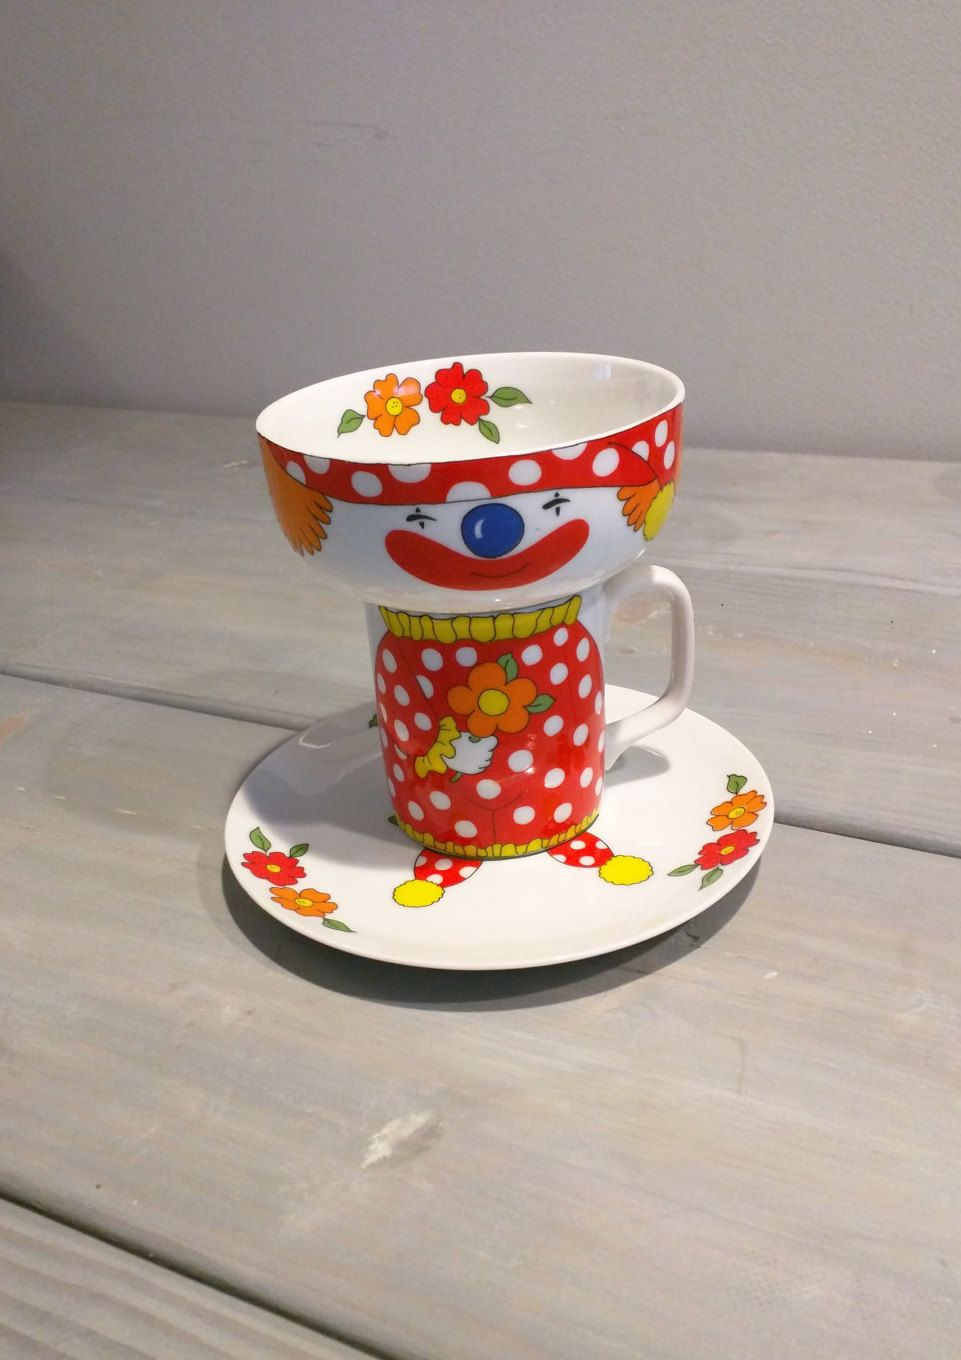 Vintage Children S Dishes Child S Stacking Dish Set Collectable Clown Vintage Clown Stacking Plate Bowl Mug Set Chi Childrens Dishes Vintage Clown Dish Sets